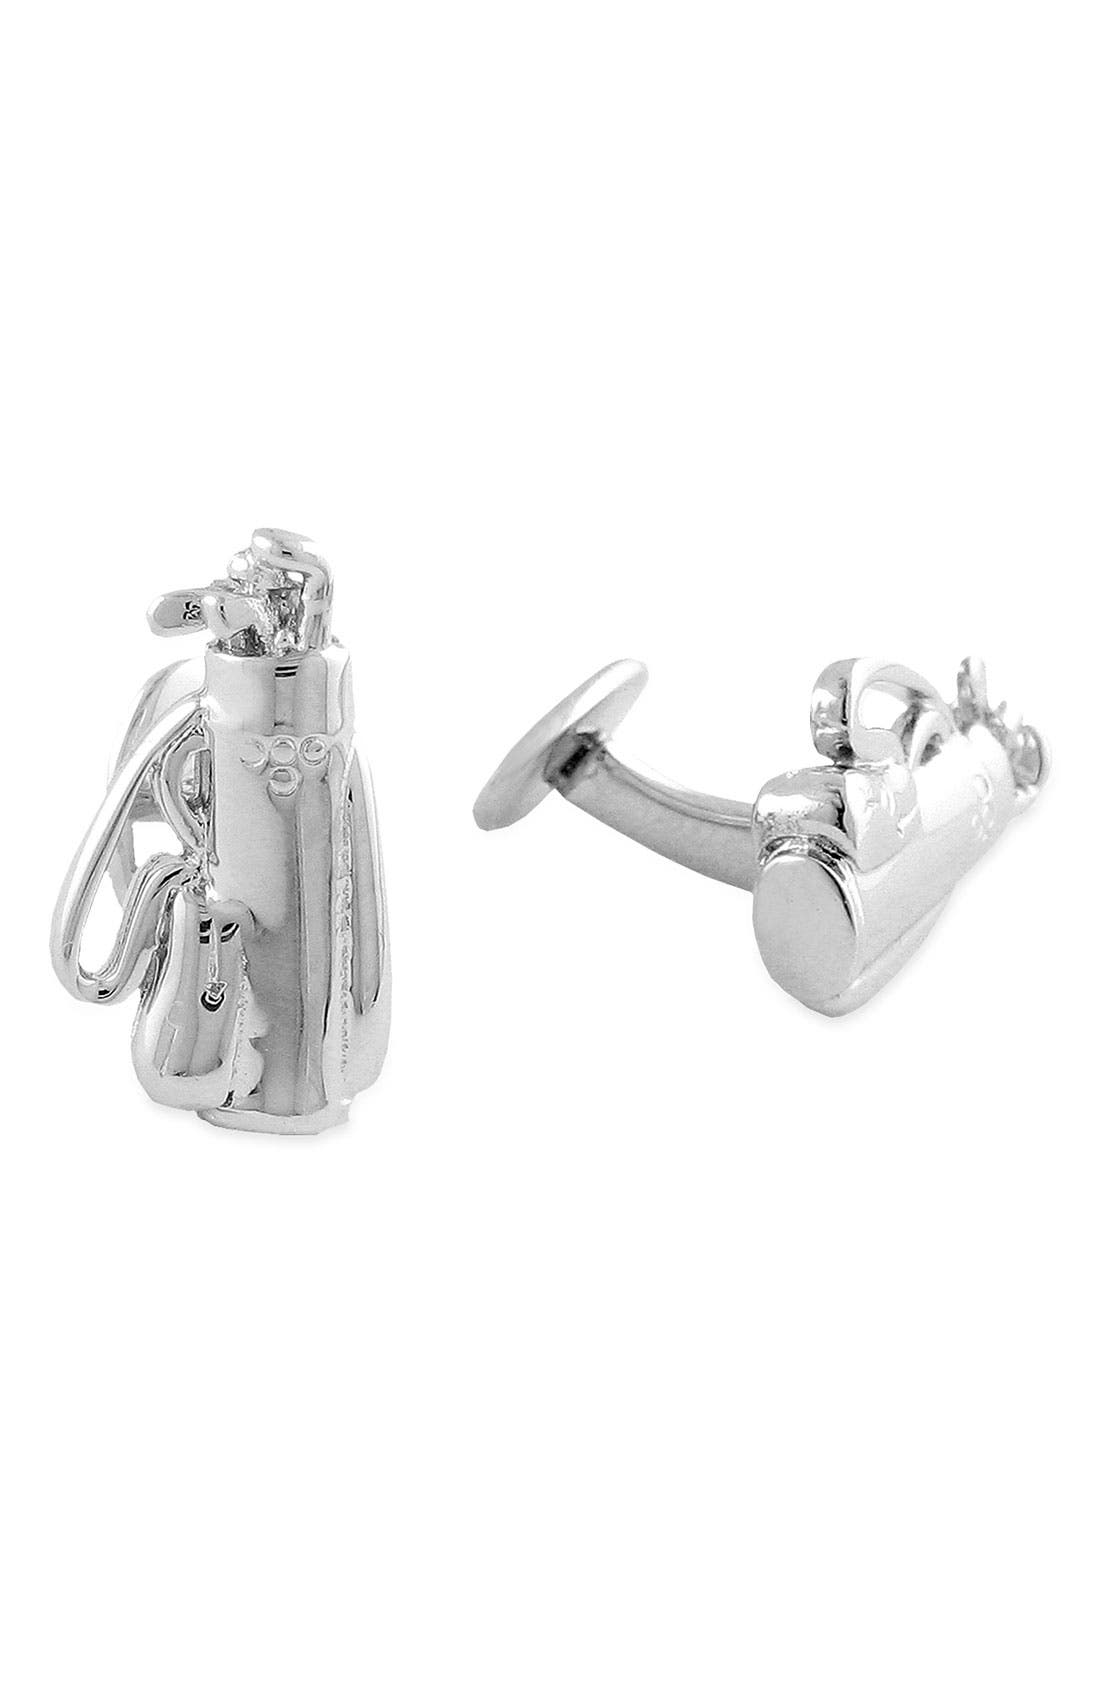 'Golf' Sterling Silver Cuff Links,                             Main thumbnail 1, color,                             Silver